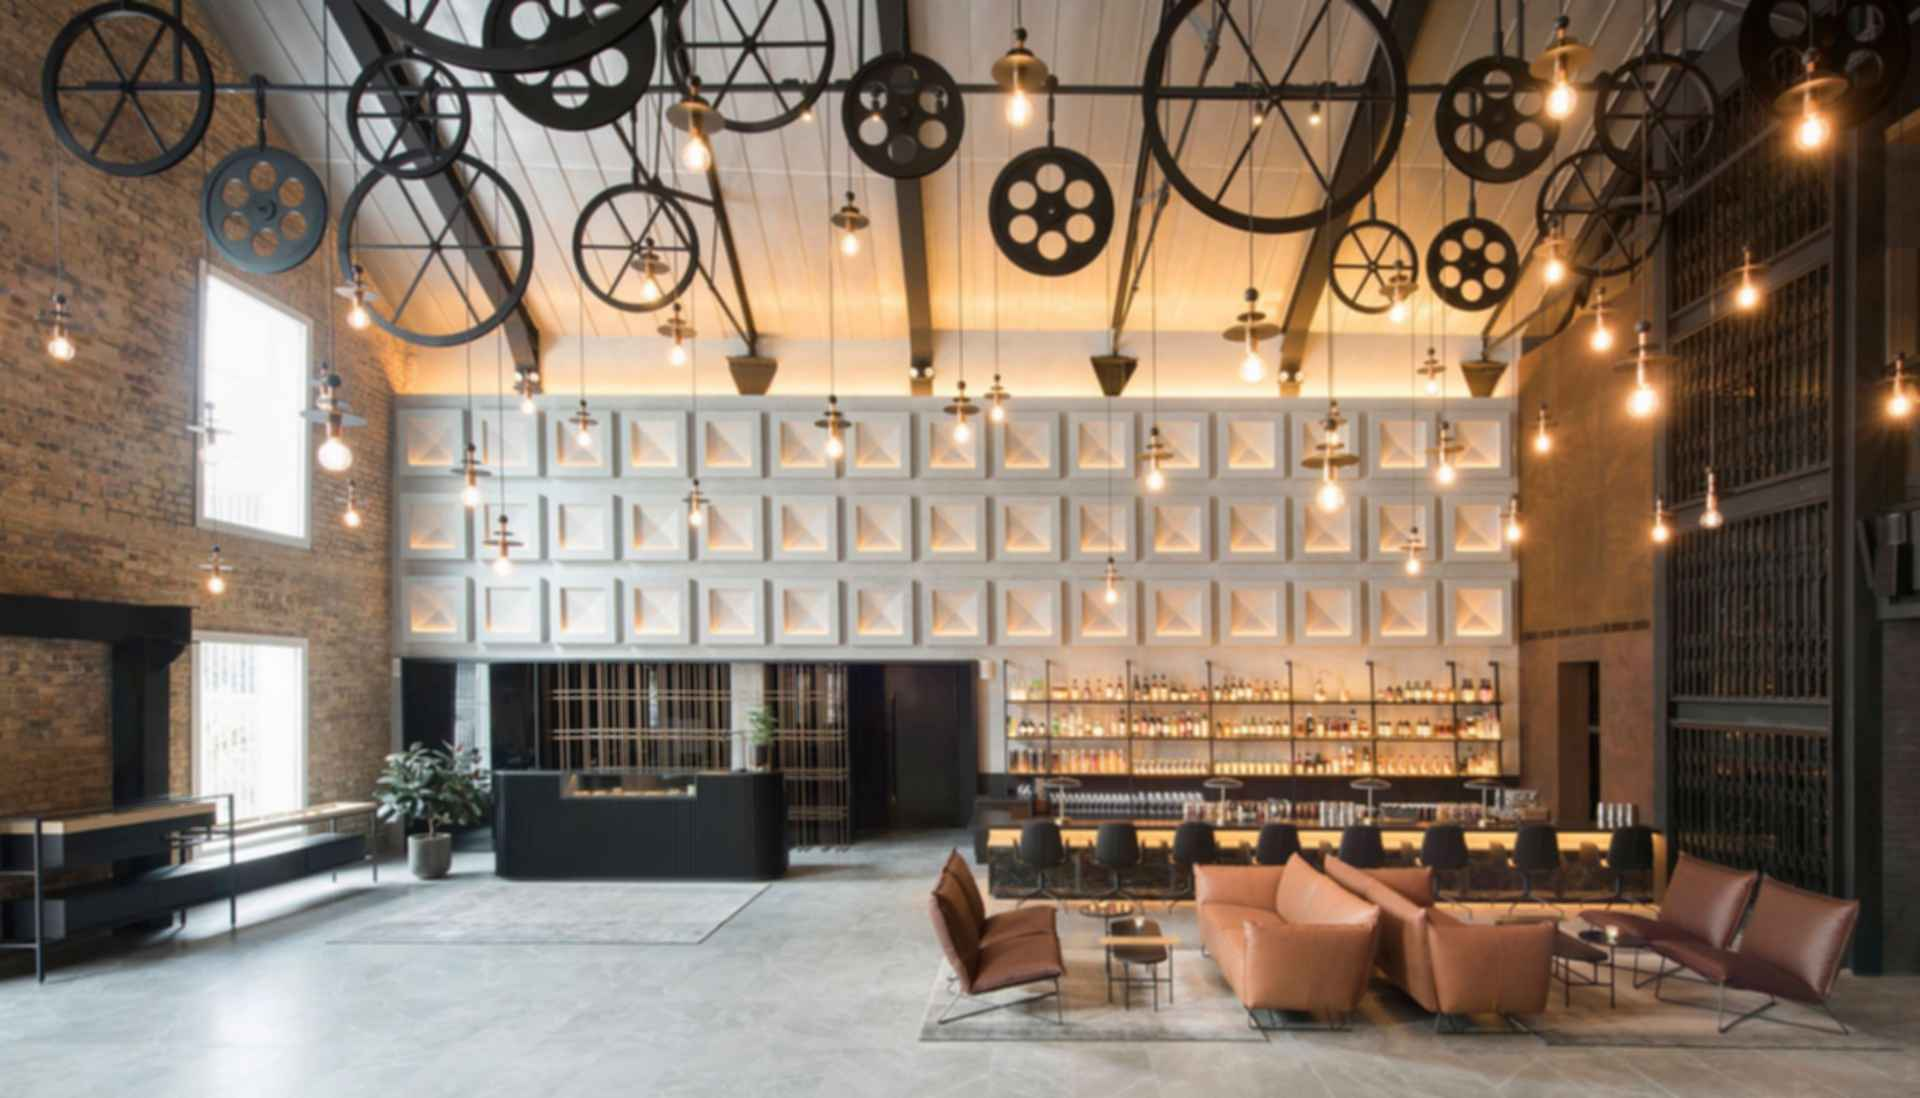 The Warehouse Hotel - Interior